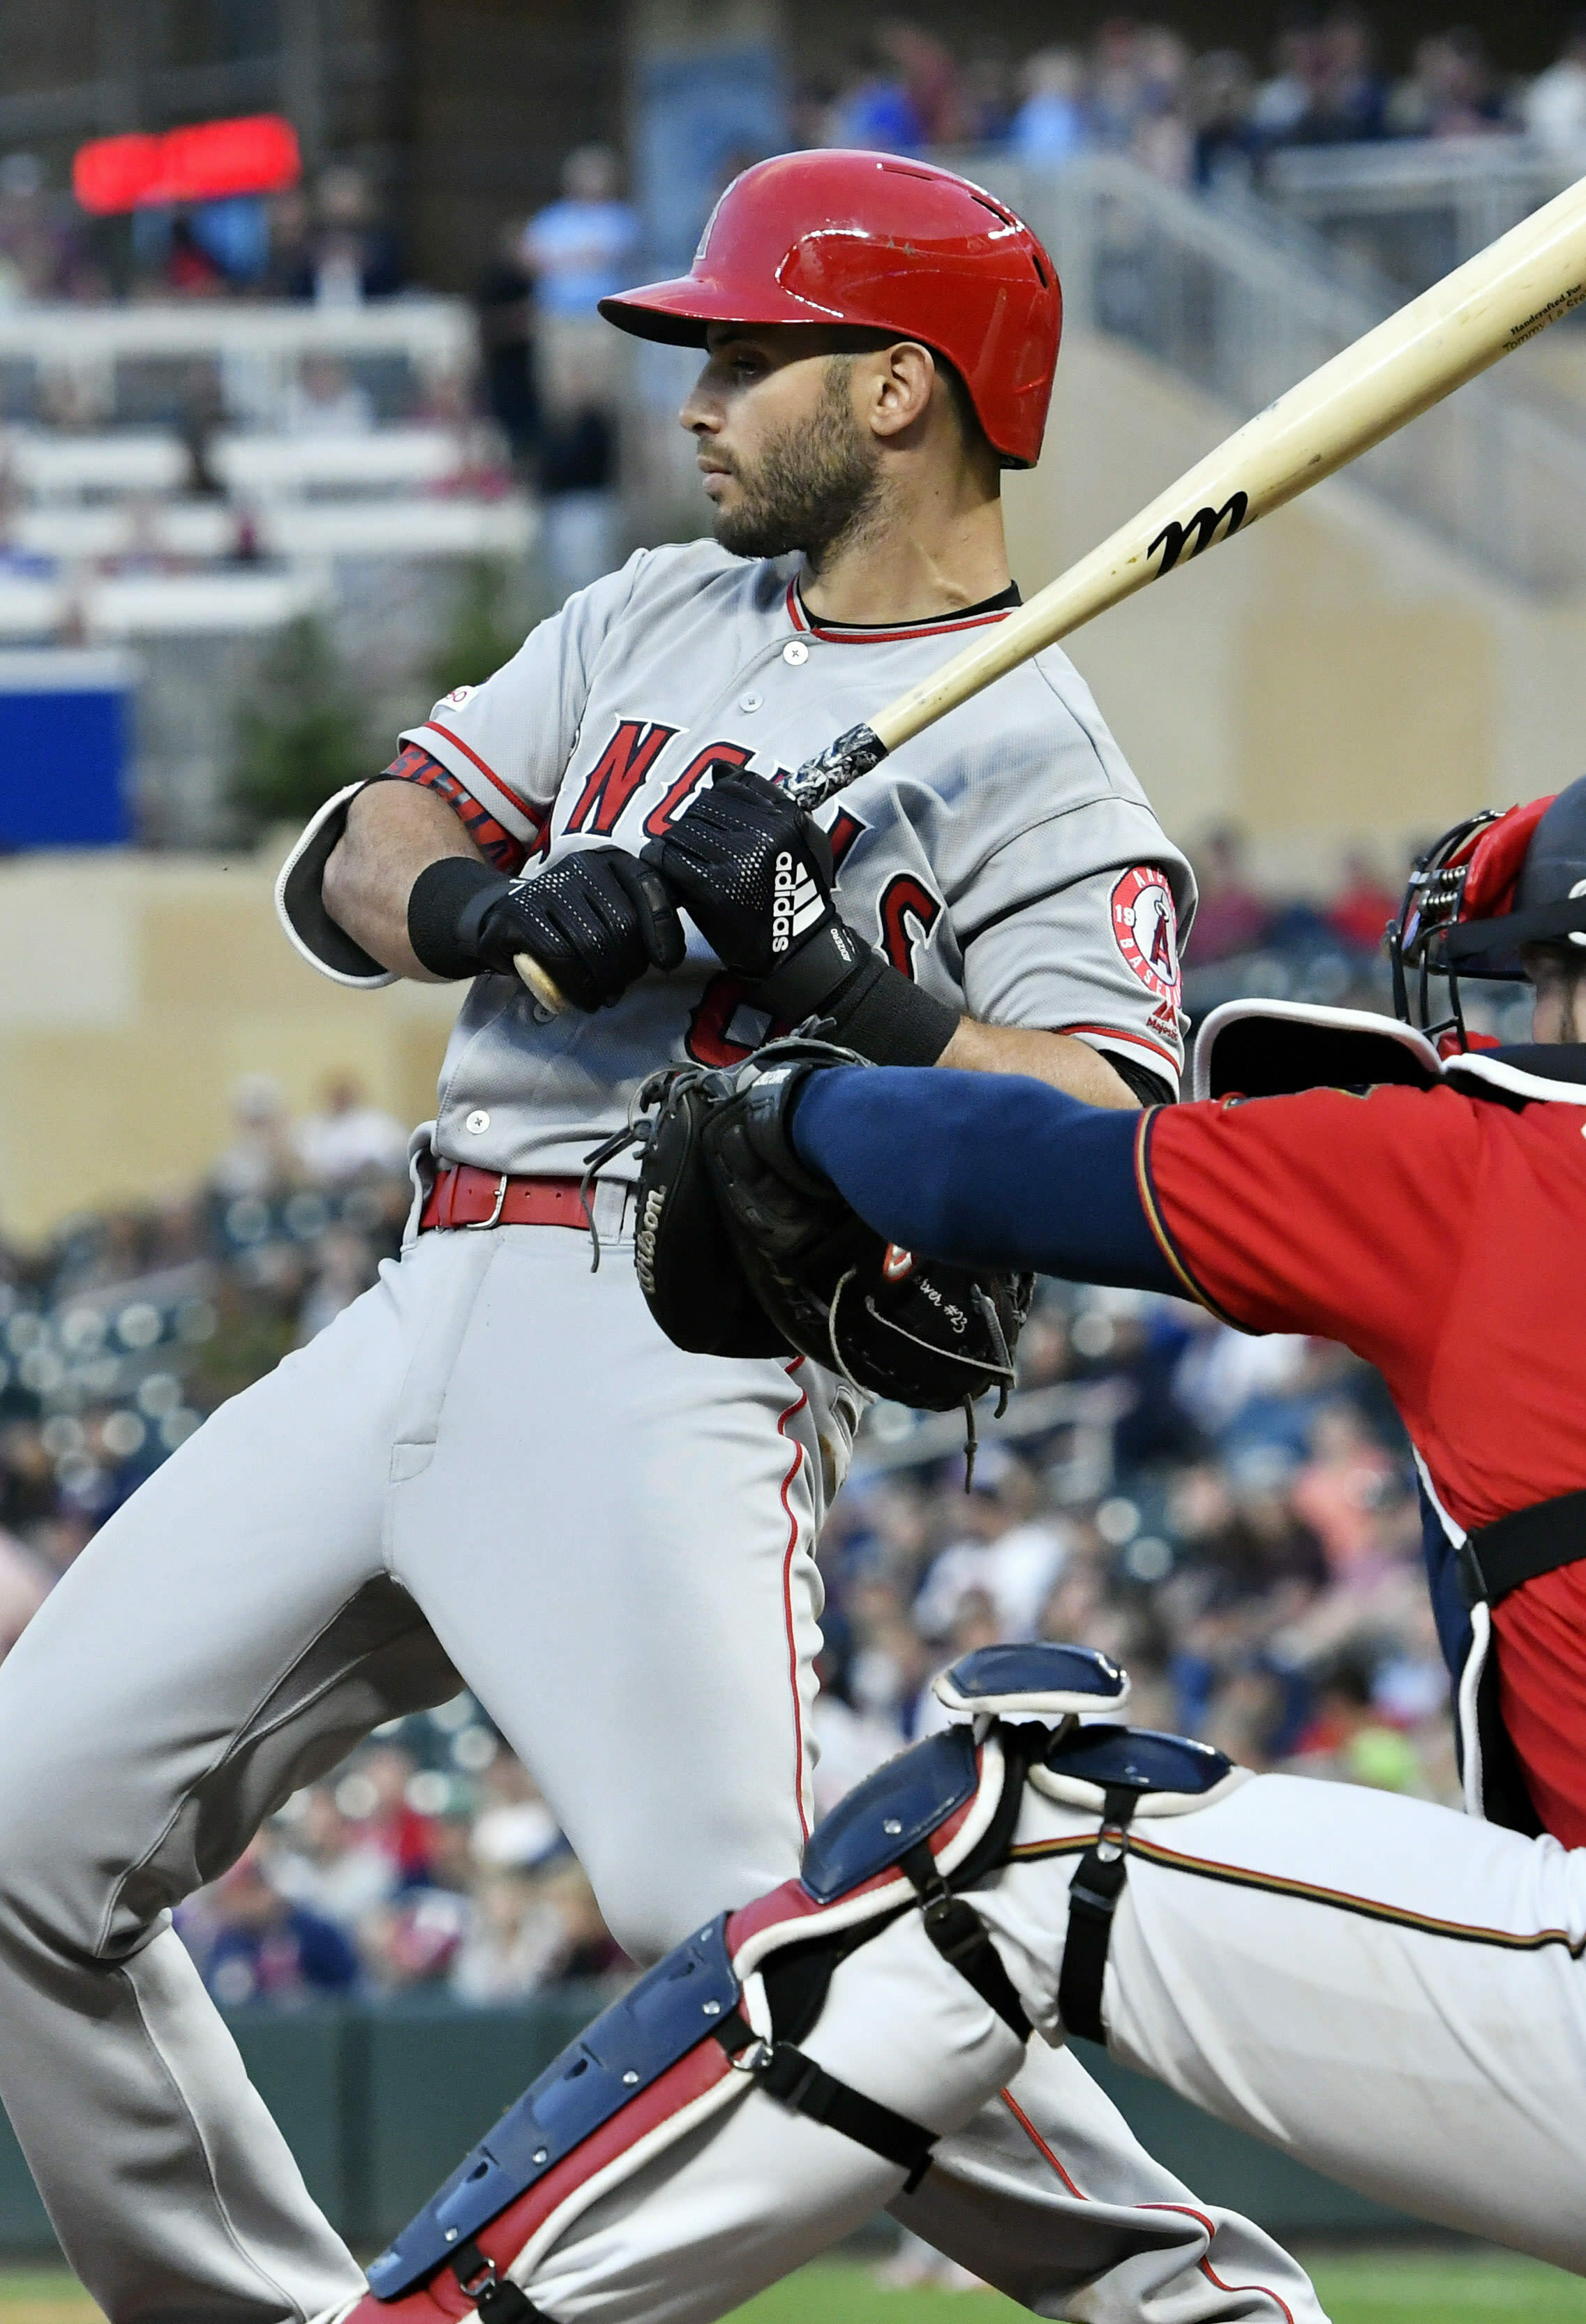 Los Angeles Angels' Justin Upton rears back from a close pitch by Minnesota Twins pitcher Kyle Gibson in the sixth inning of a baseball game Tuesday, May 14, 2019, in Minneapolis. (AP Photo/Jim Mone)